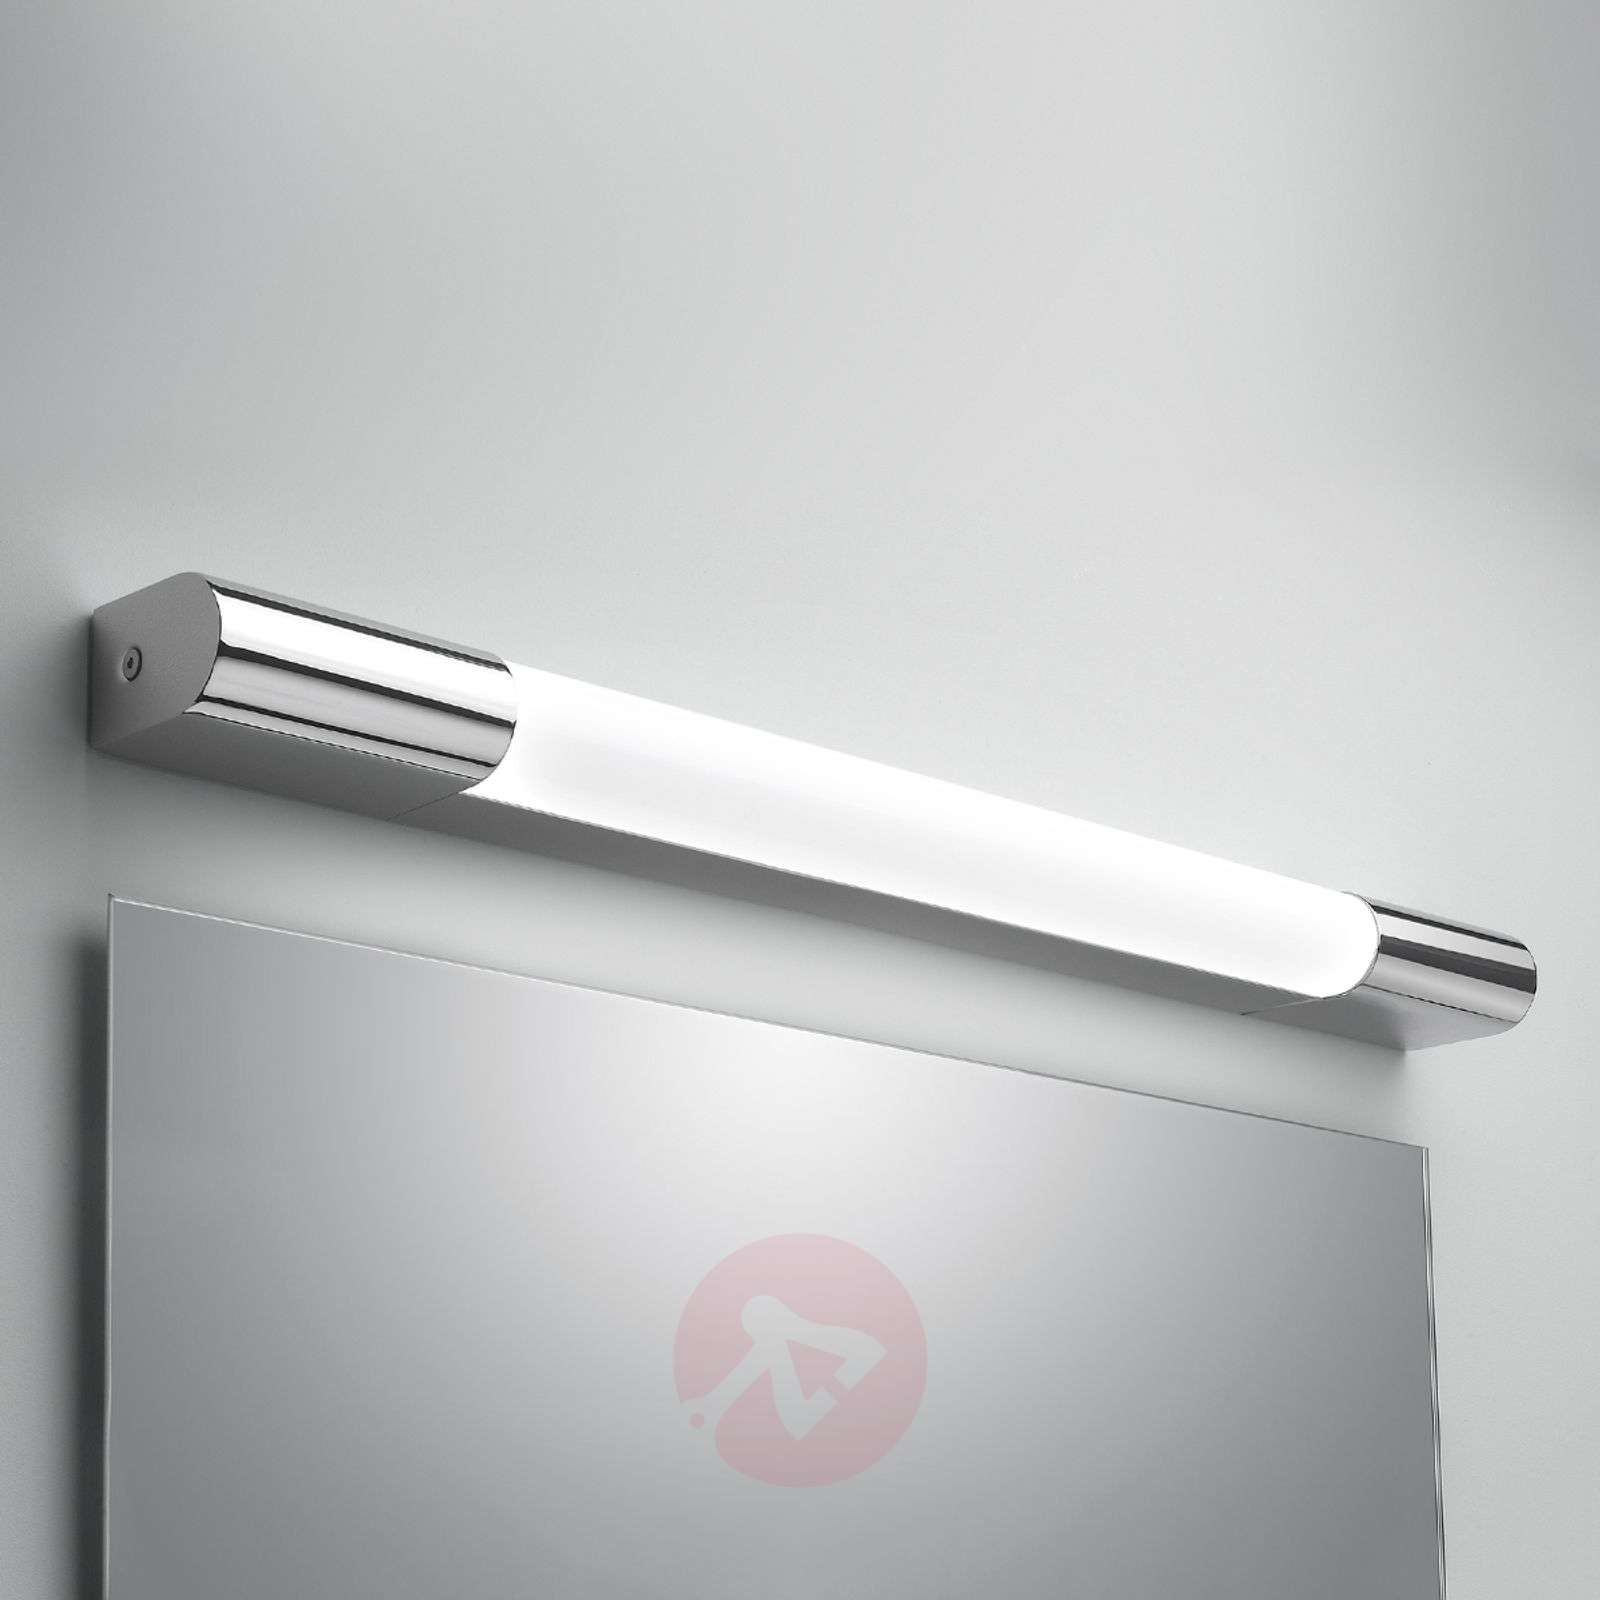 Palermo Wall Light 24 W 60 cm IP44-1020040-04